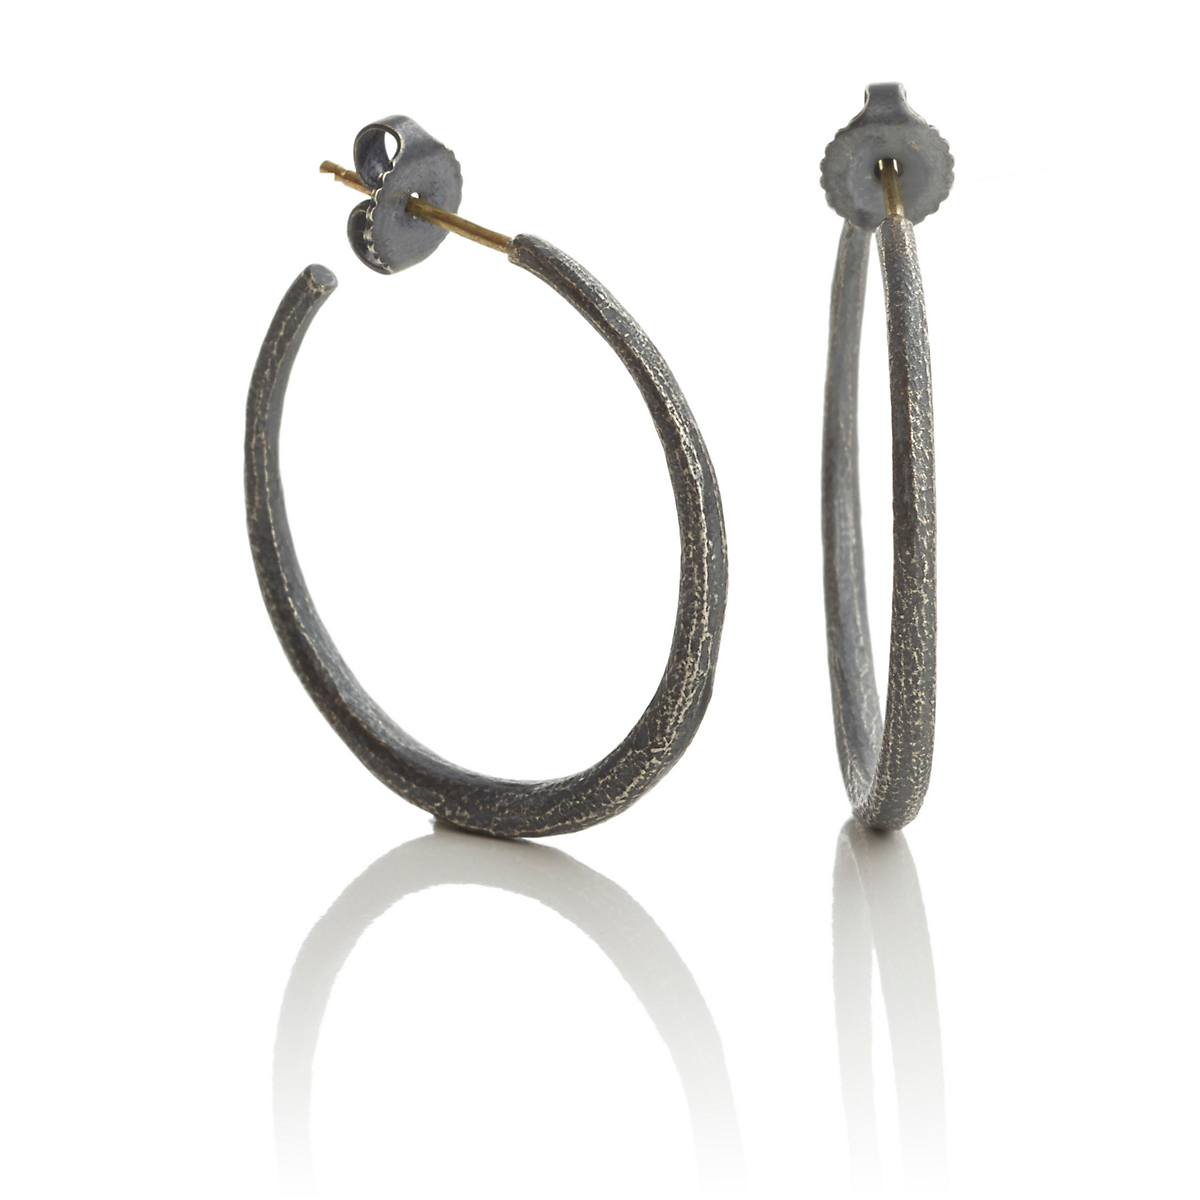 John Iversen Oxidized Silver Textured Hoop Earrings